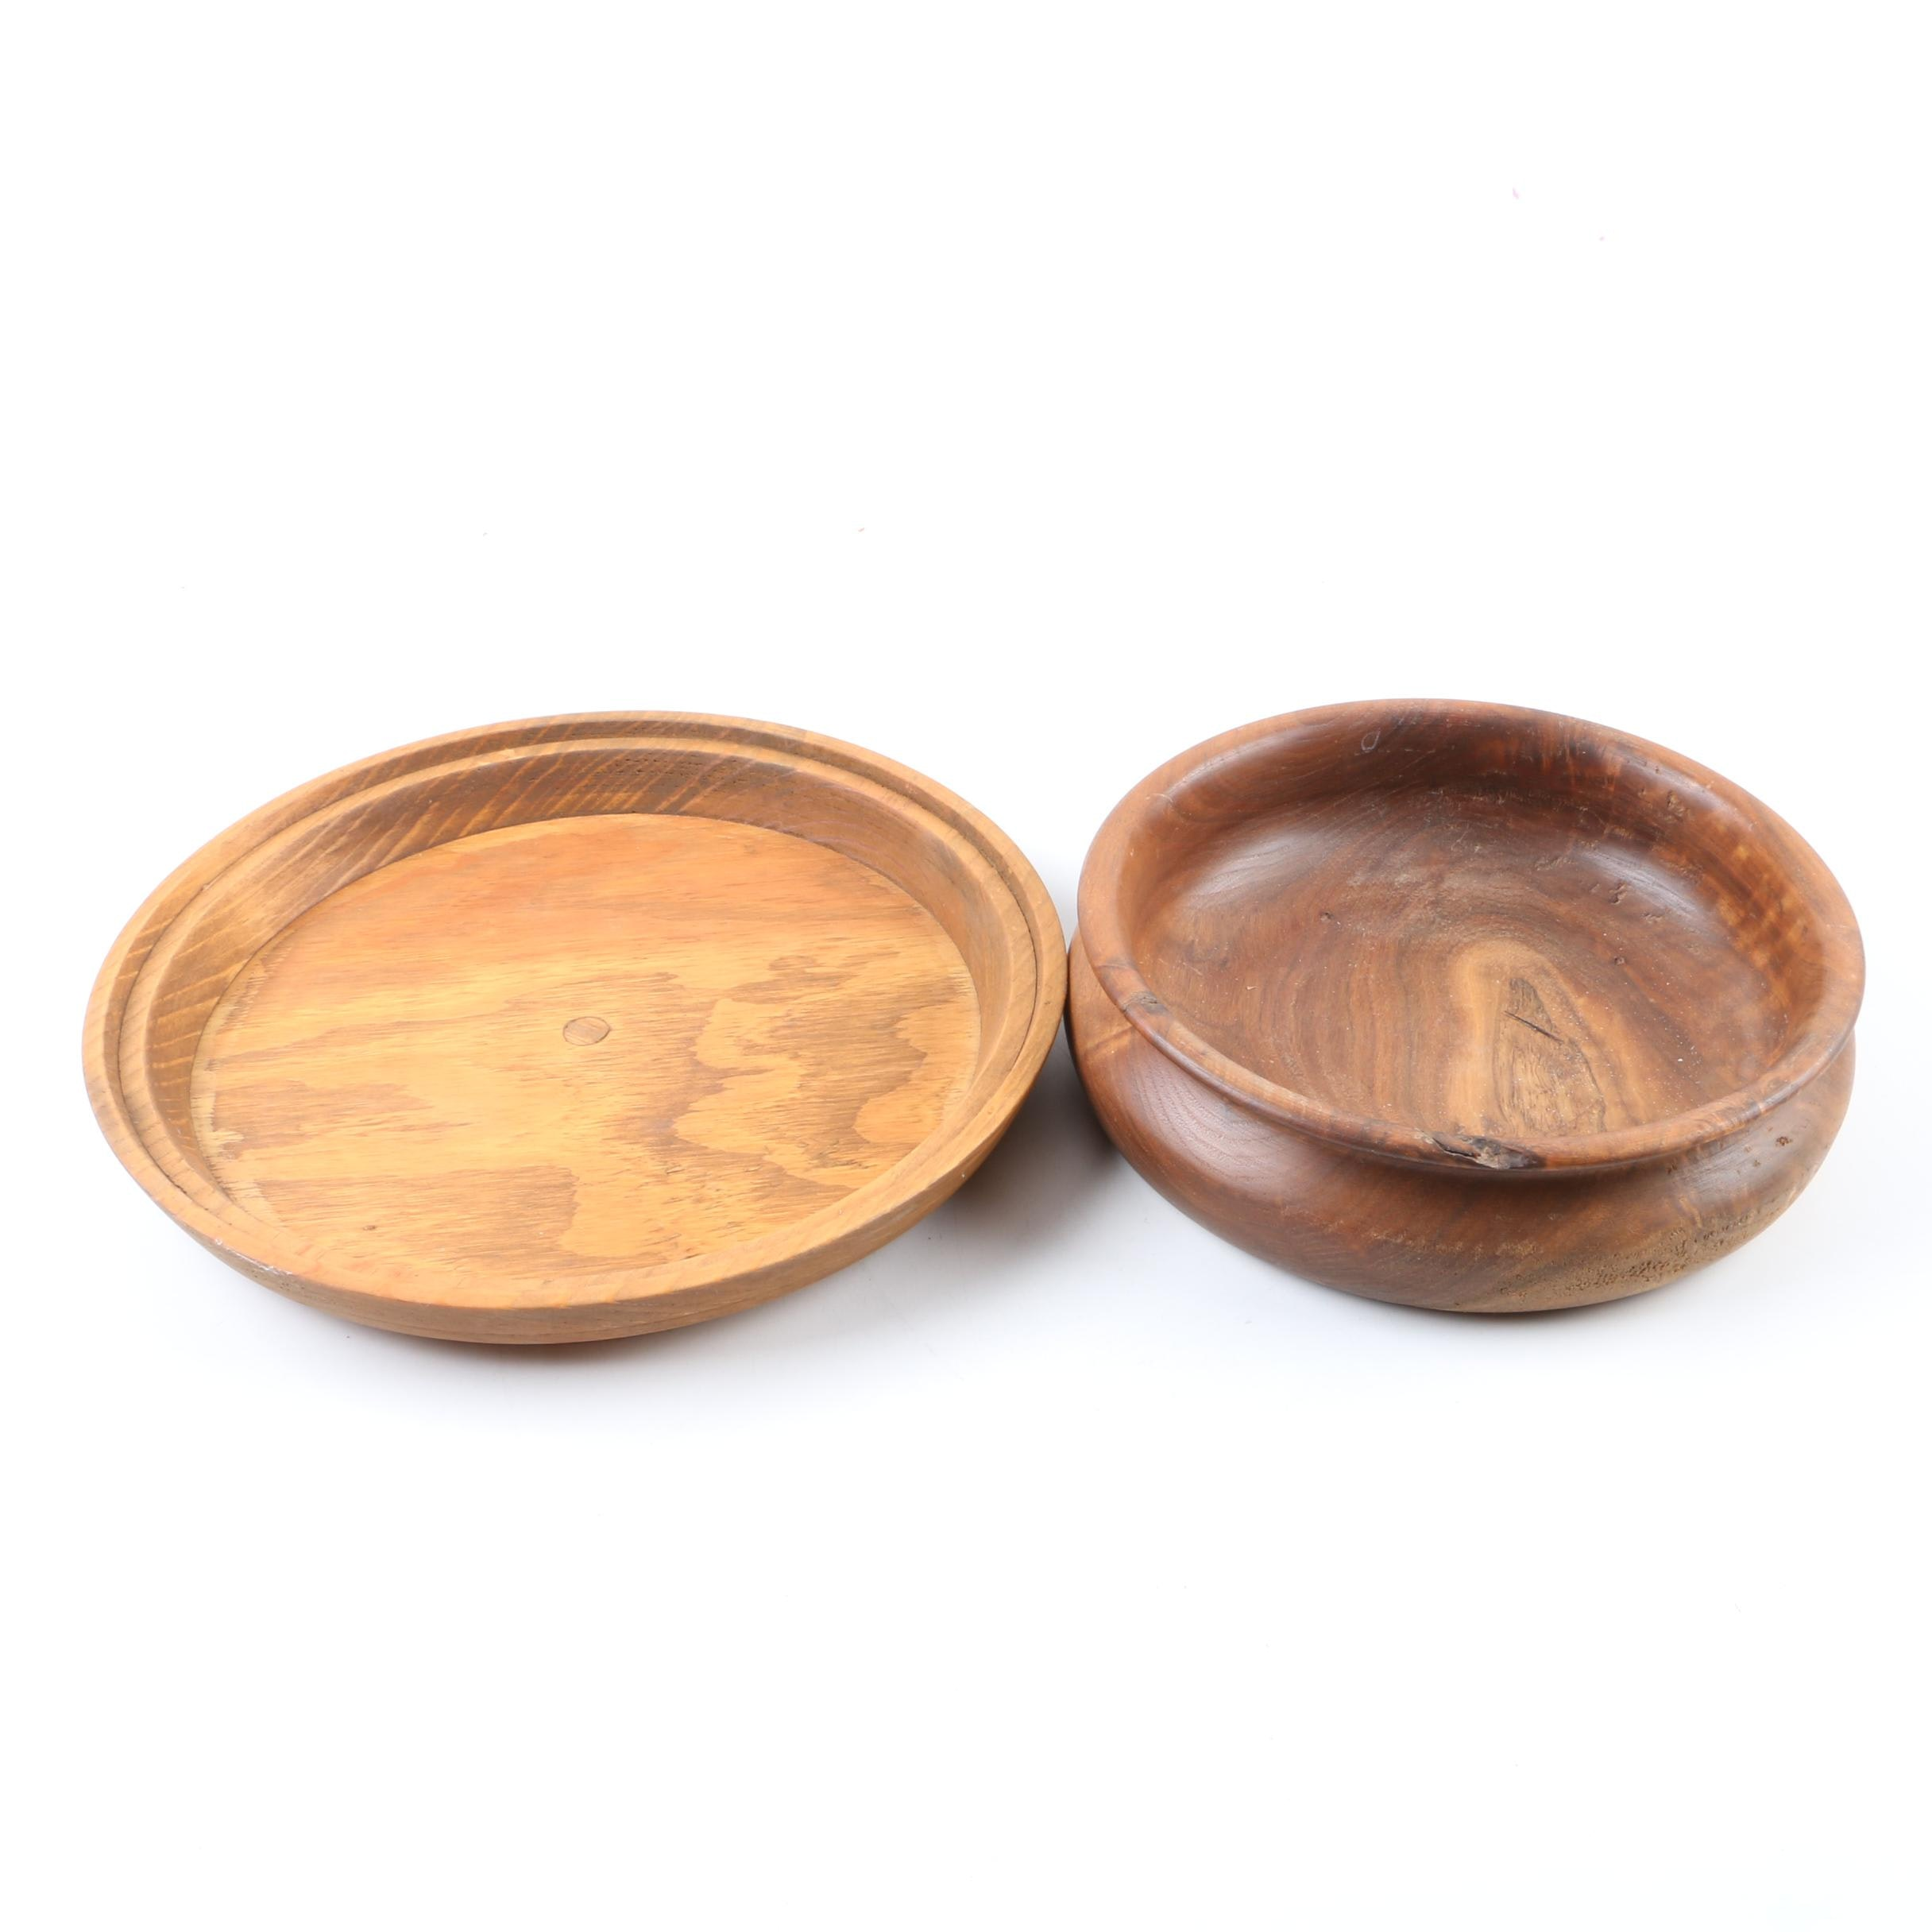 Wooden Bowl and Tray